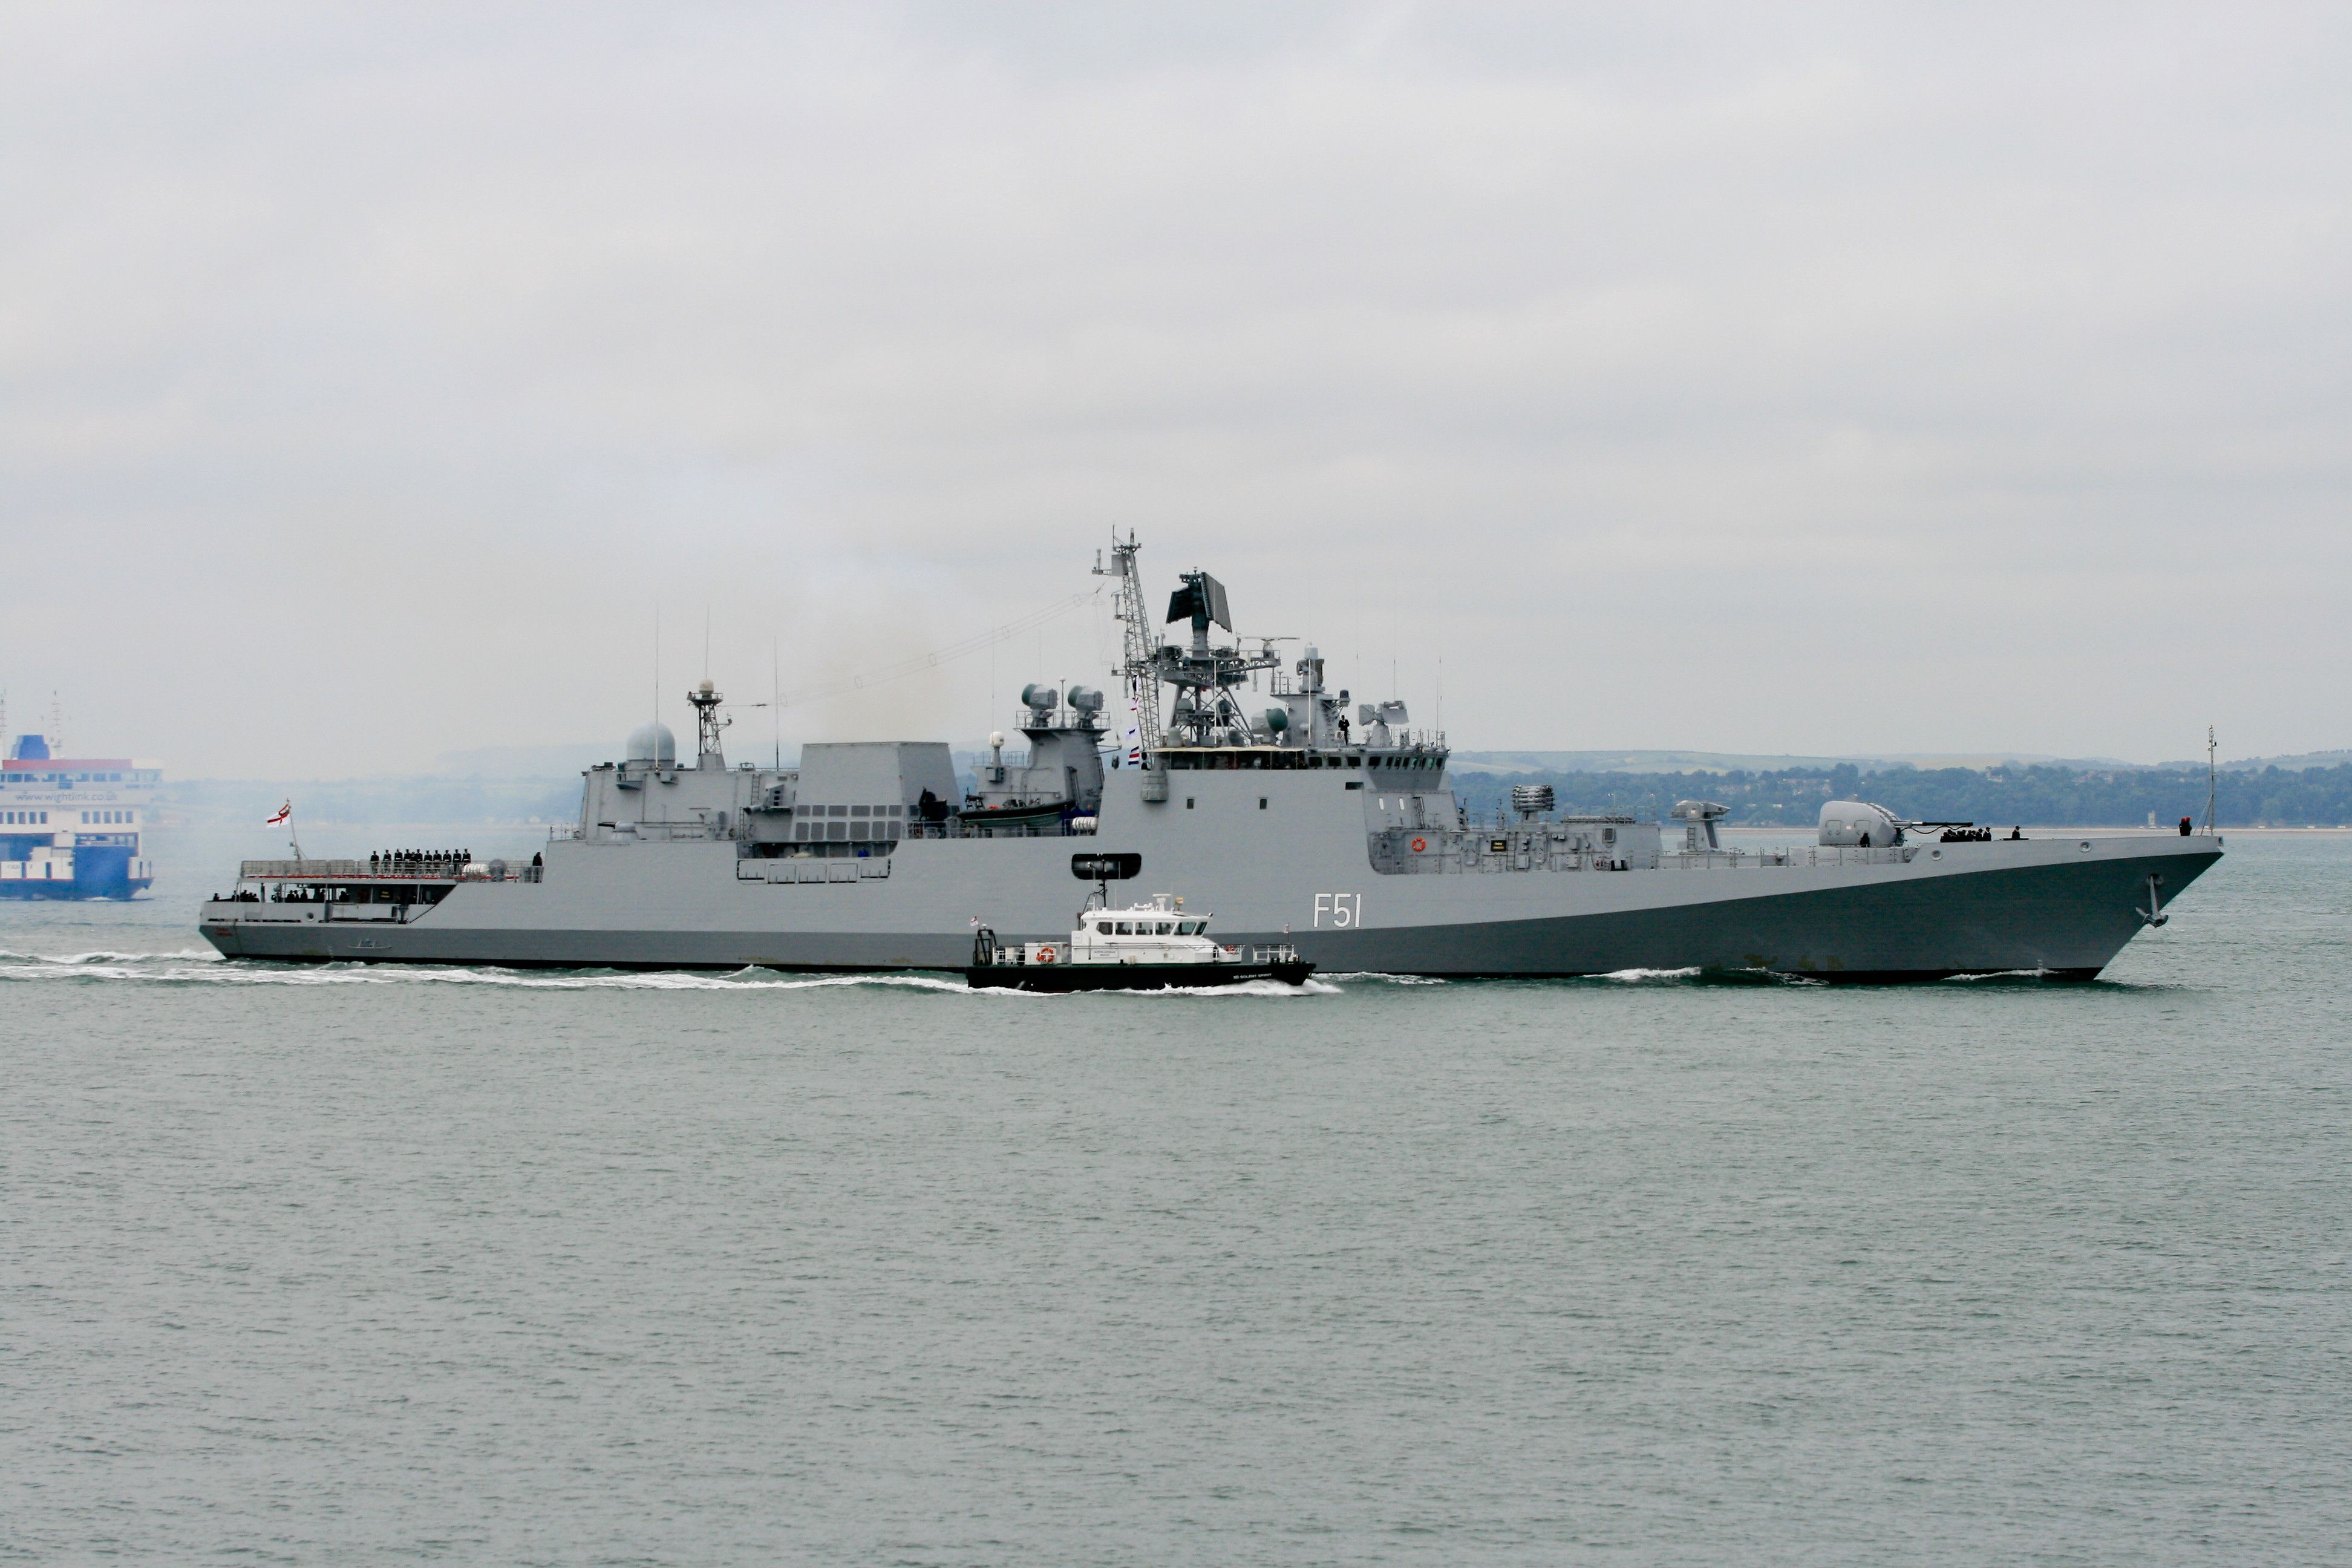 The Beautiful Ins Trikand A Talwar Class Frigate Of The Indian Navy Warship Indian Navy Navy Ships